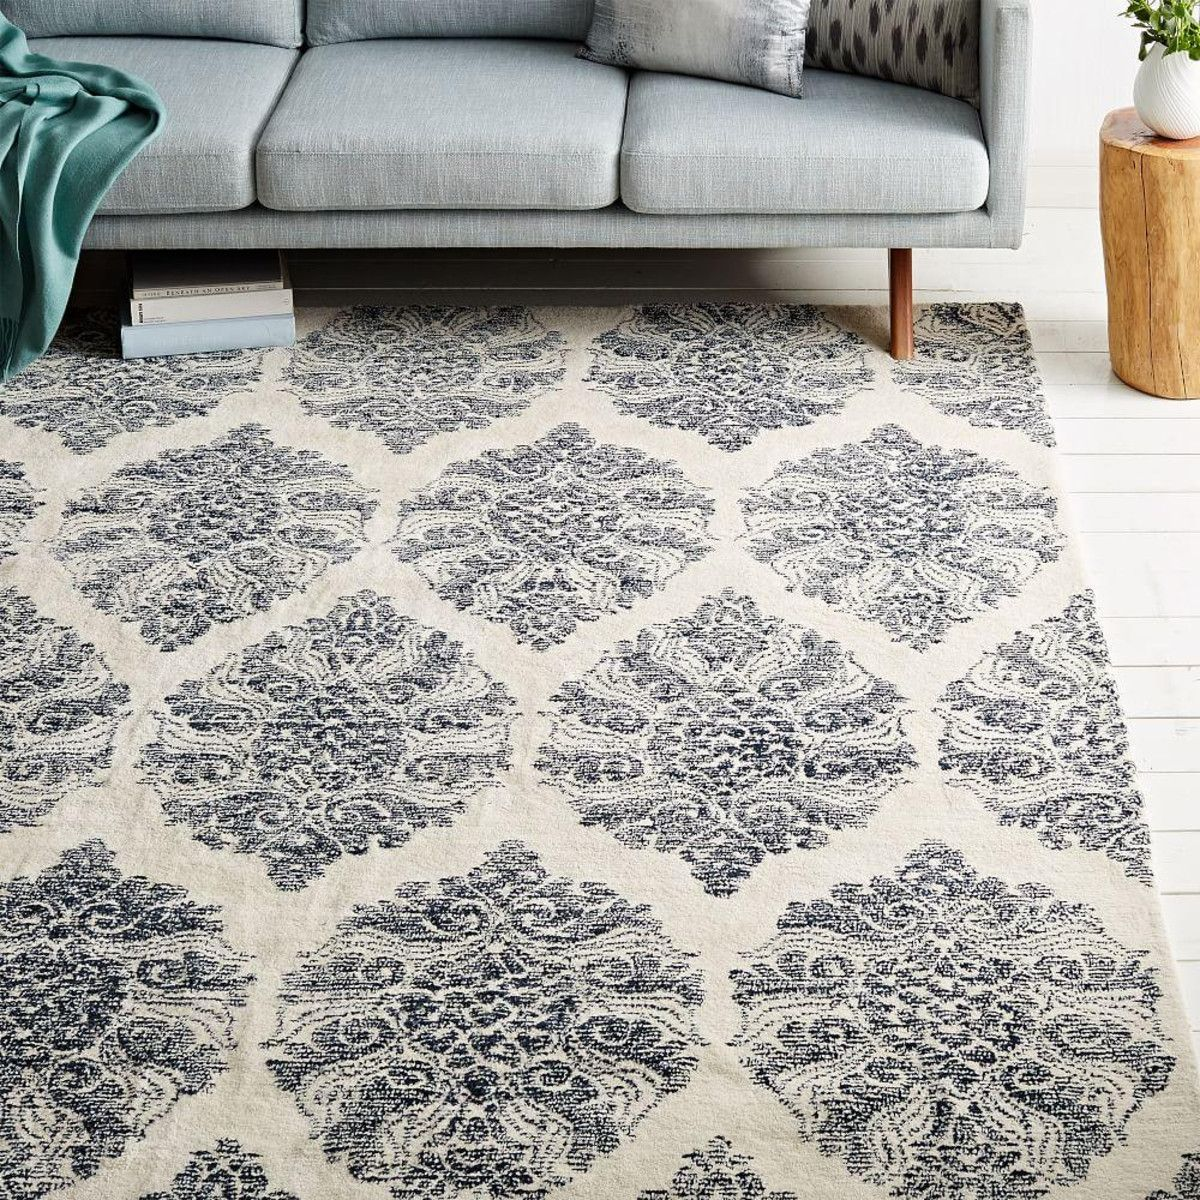 Hand Tufted By Skilled Artisans In India, Our Sarasa Wool Rug Pairs Modern  Durability With